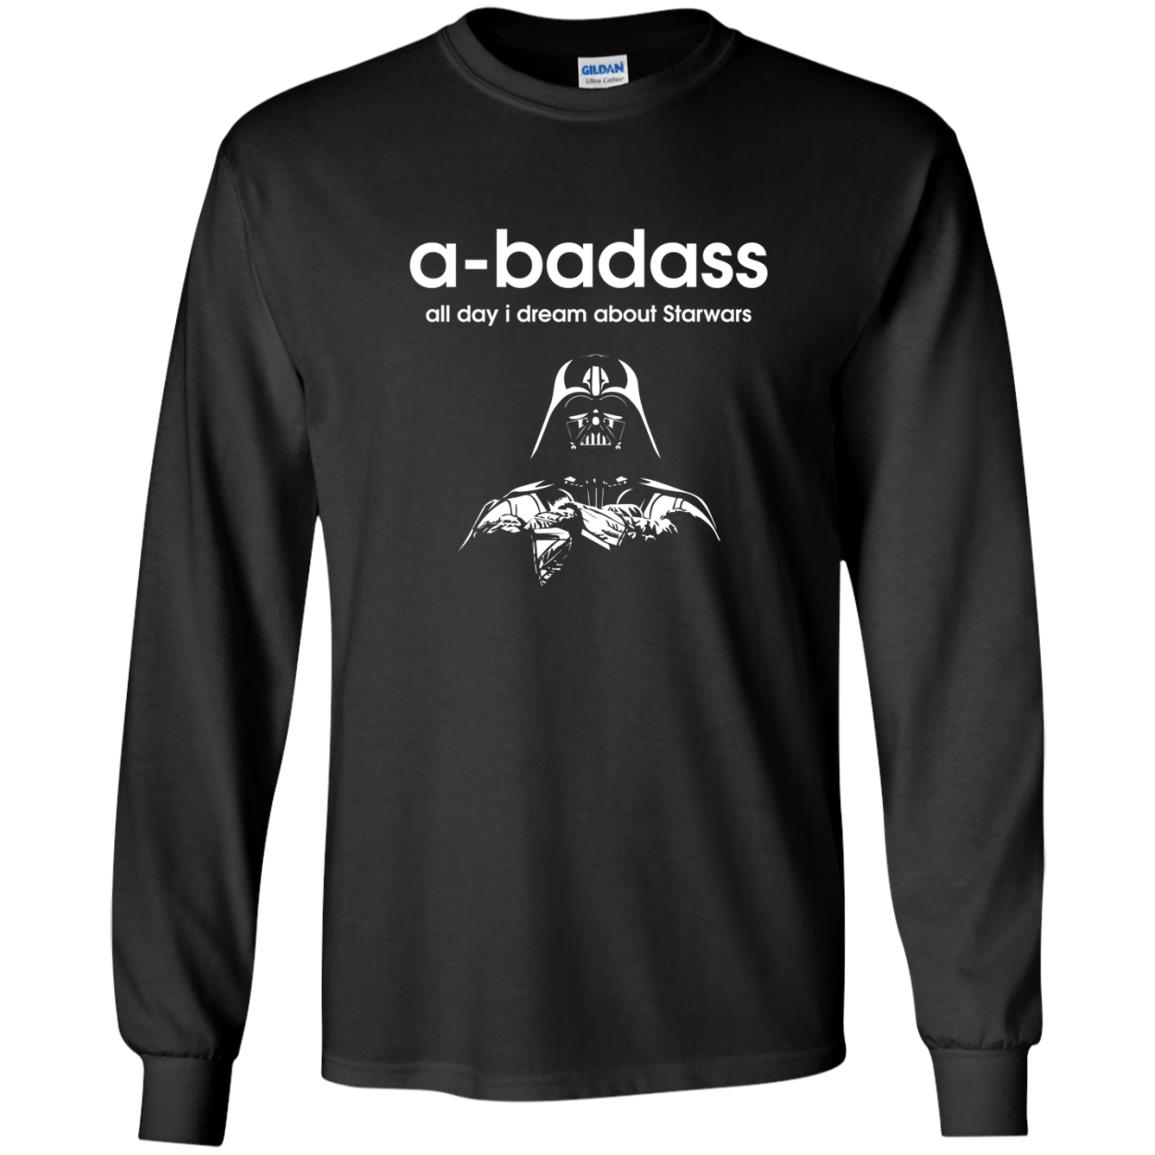 image 1184 - A-badass all day i dream about Starwars shirt, hoodie, tank